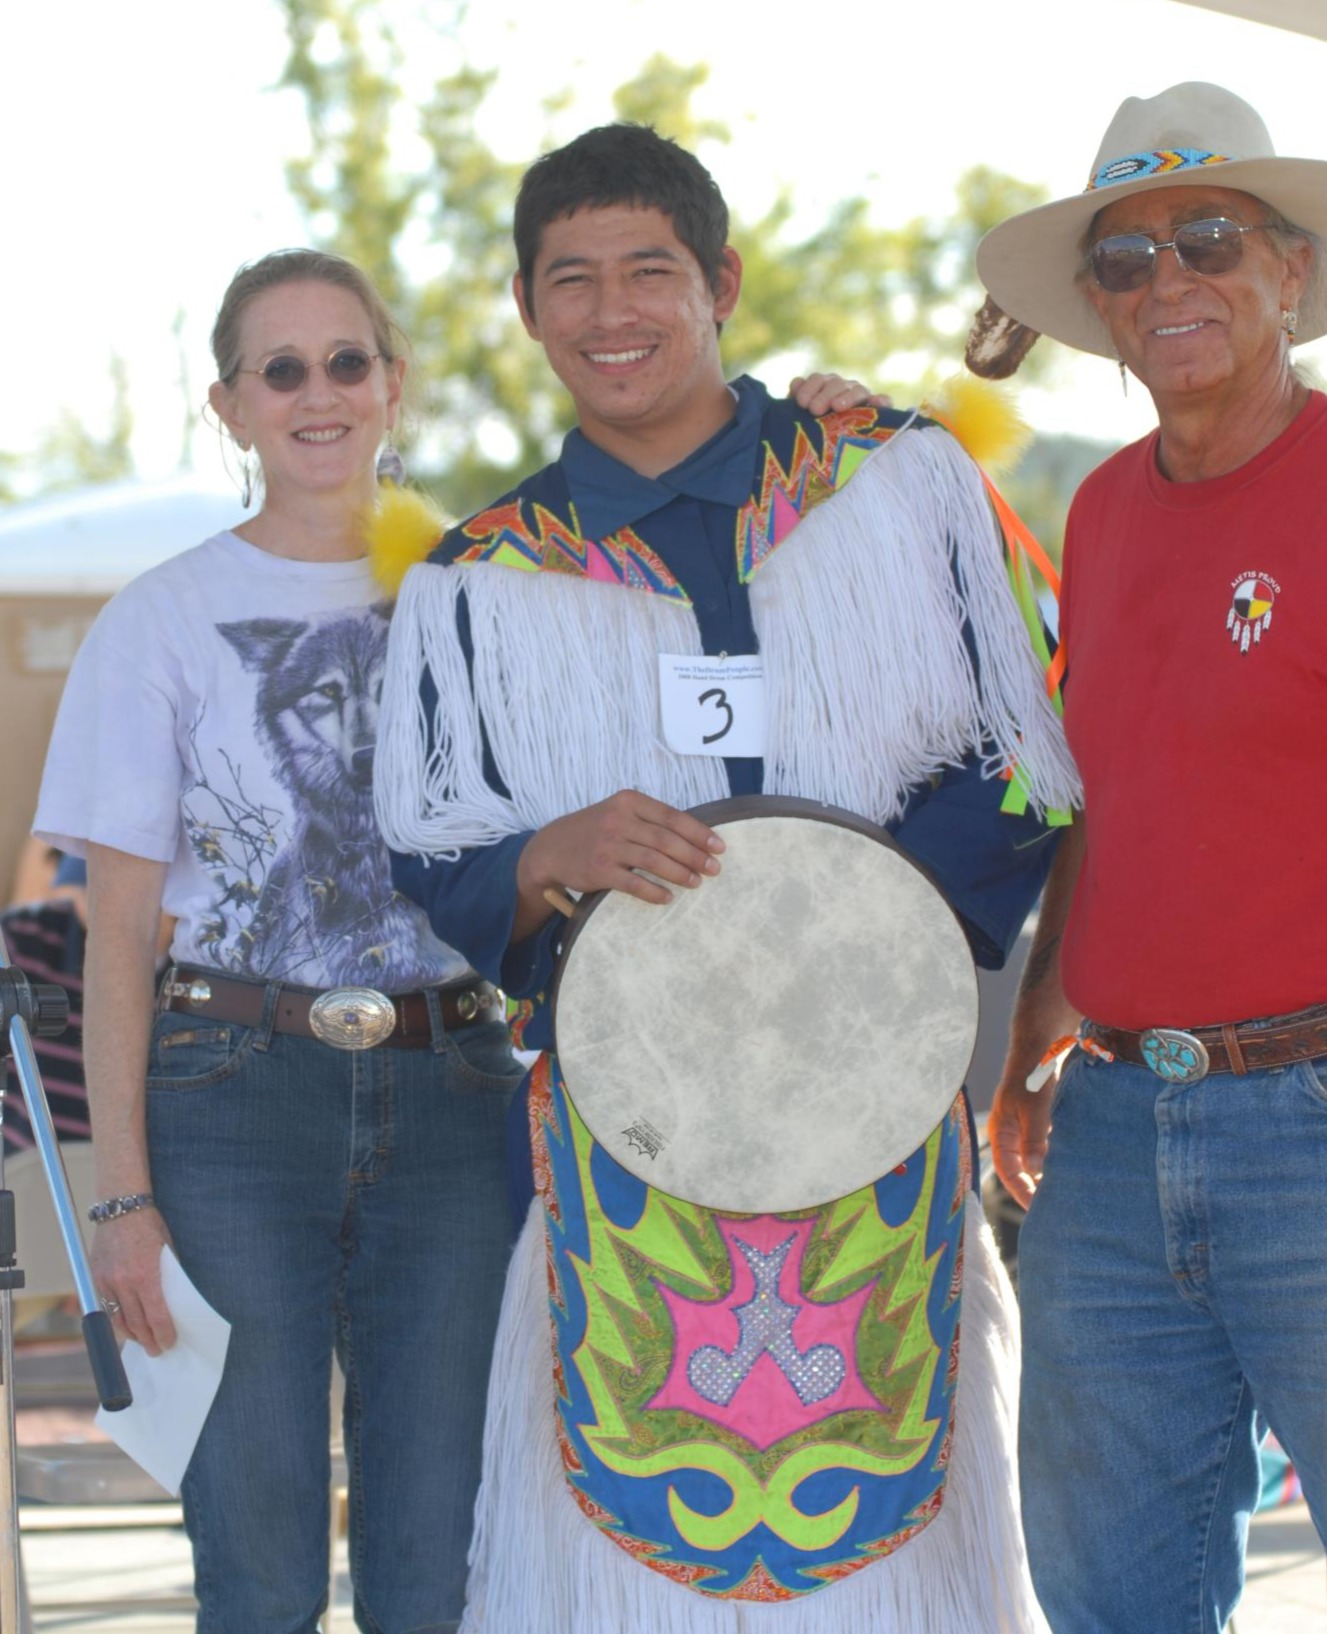 The Drum People Native American Hand Drum competition